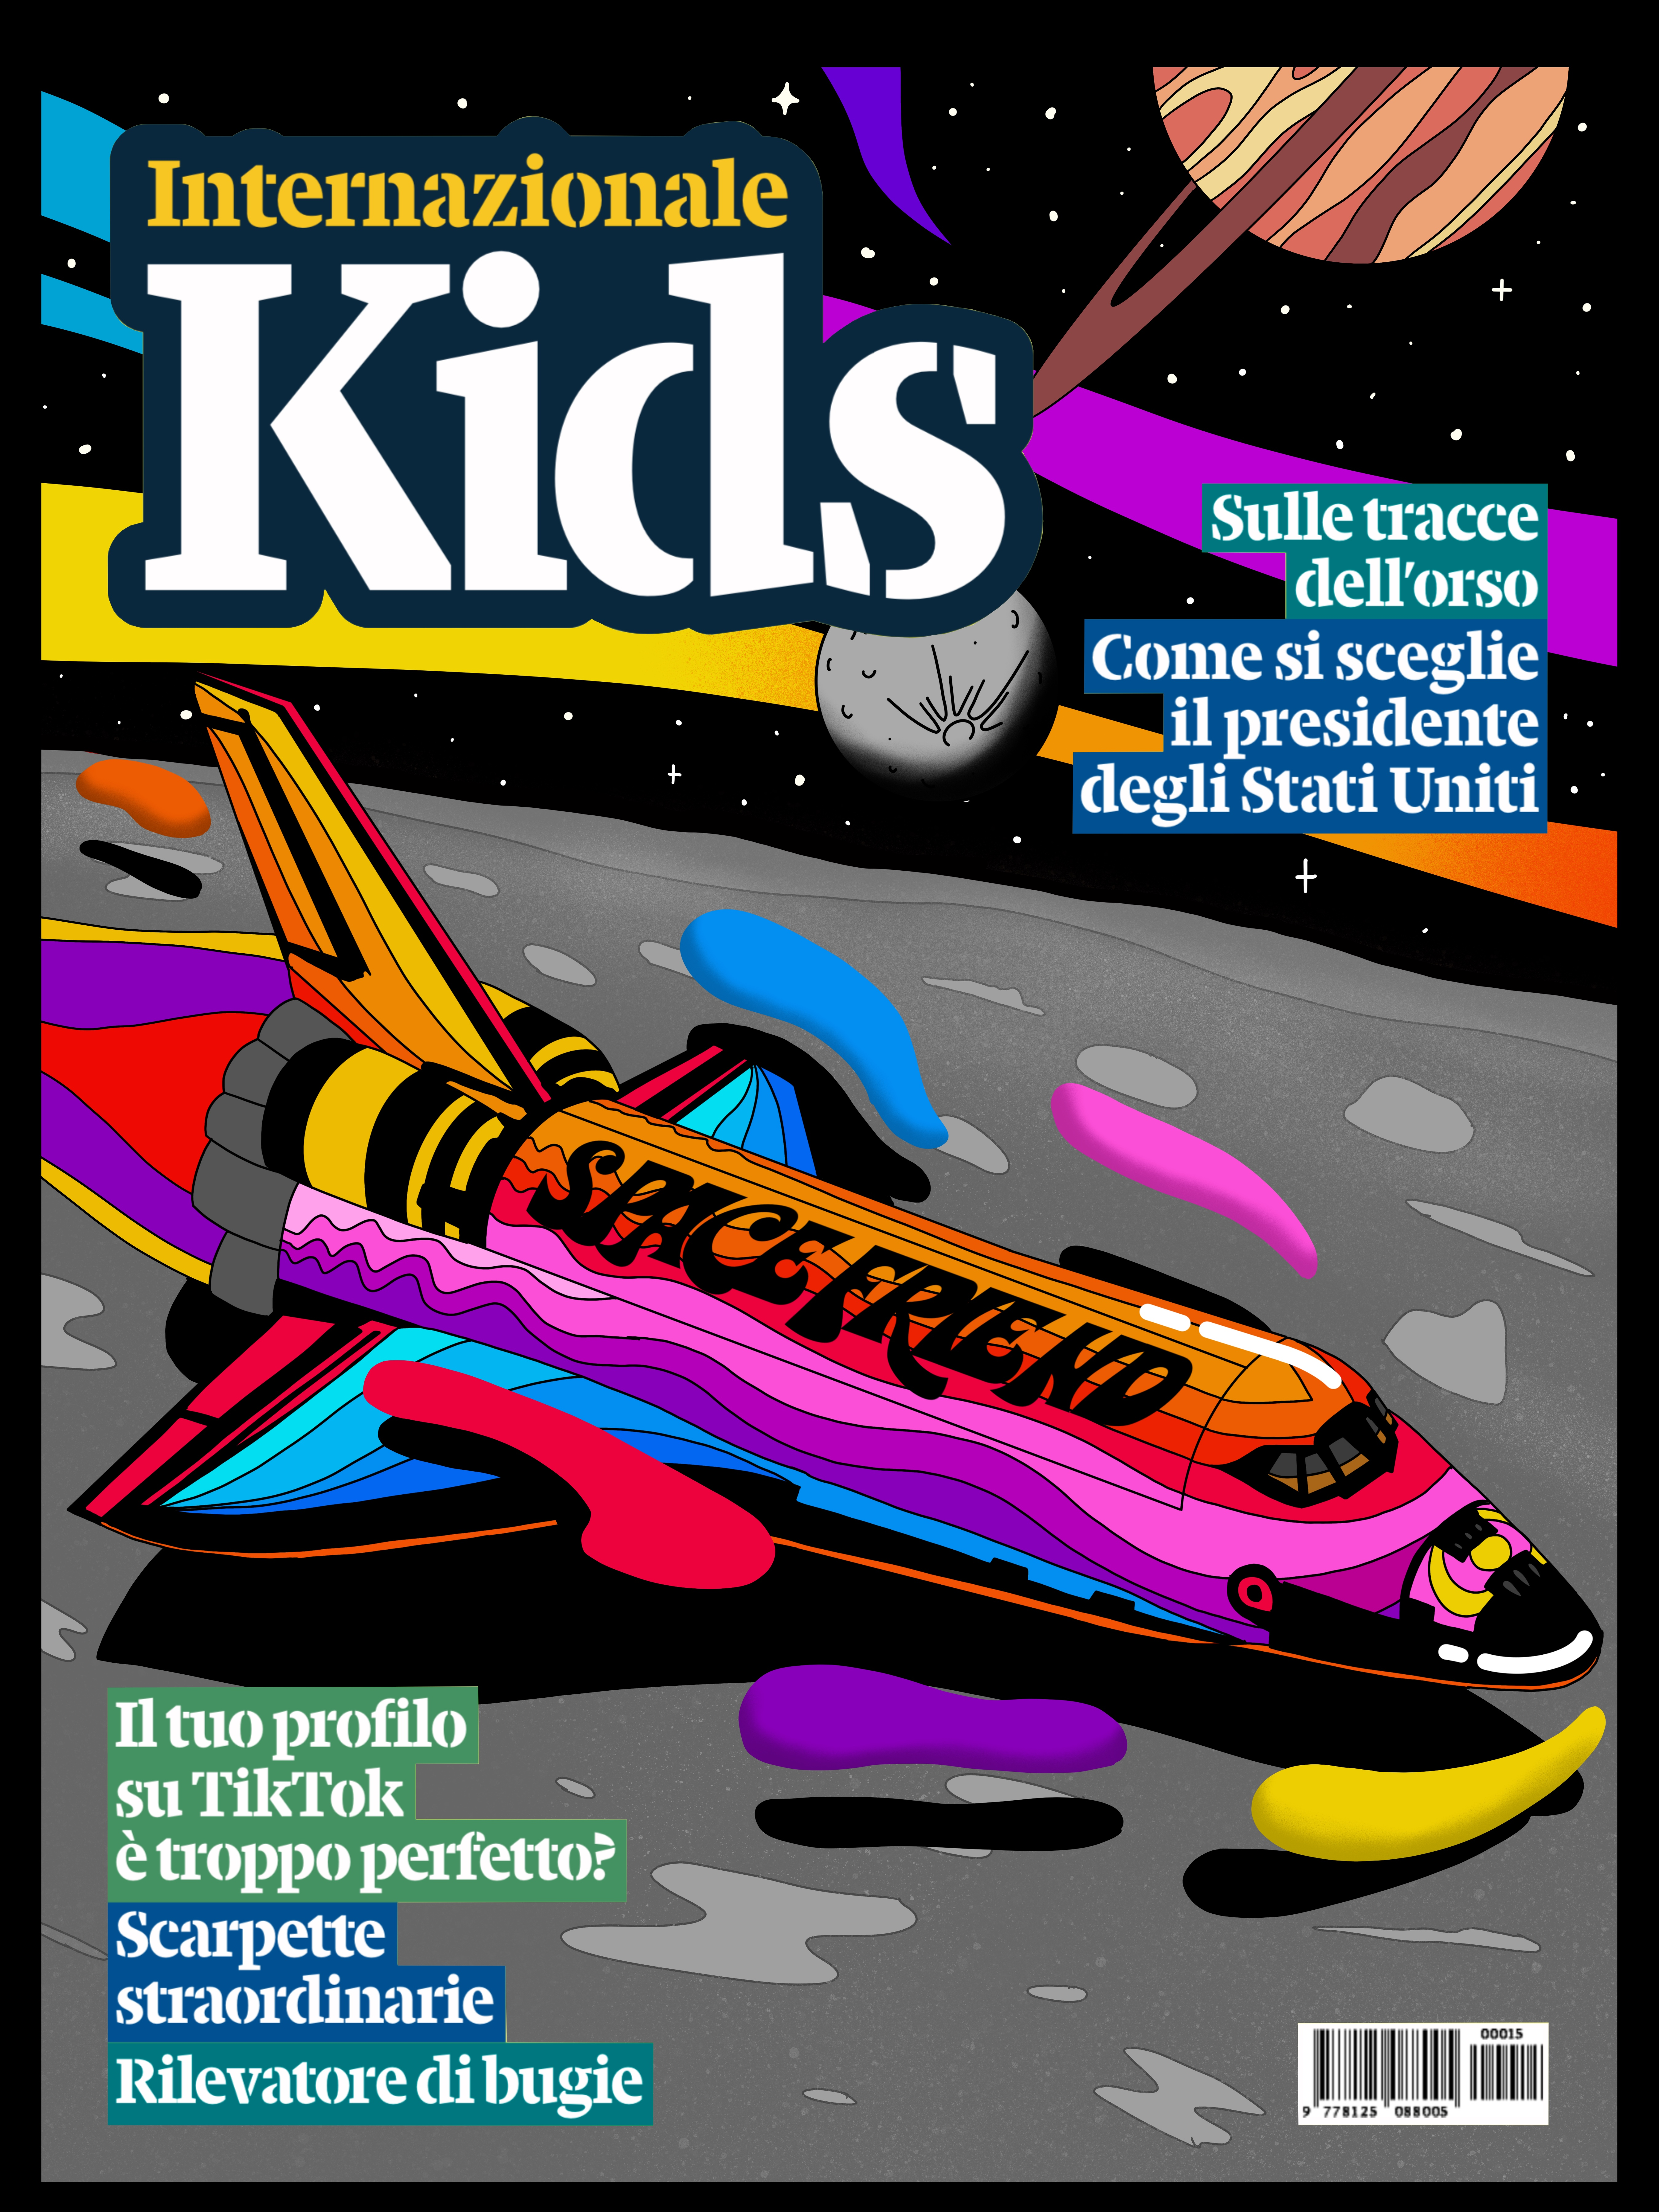 Cover for Internazionale Kids Mag. April 2021